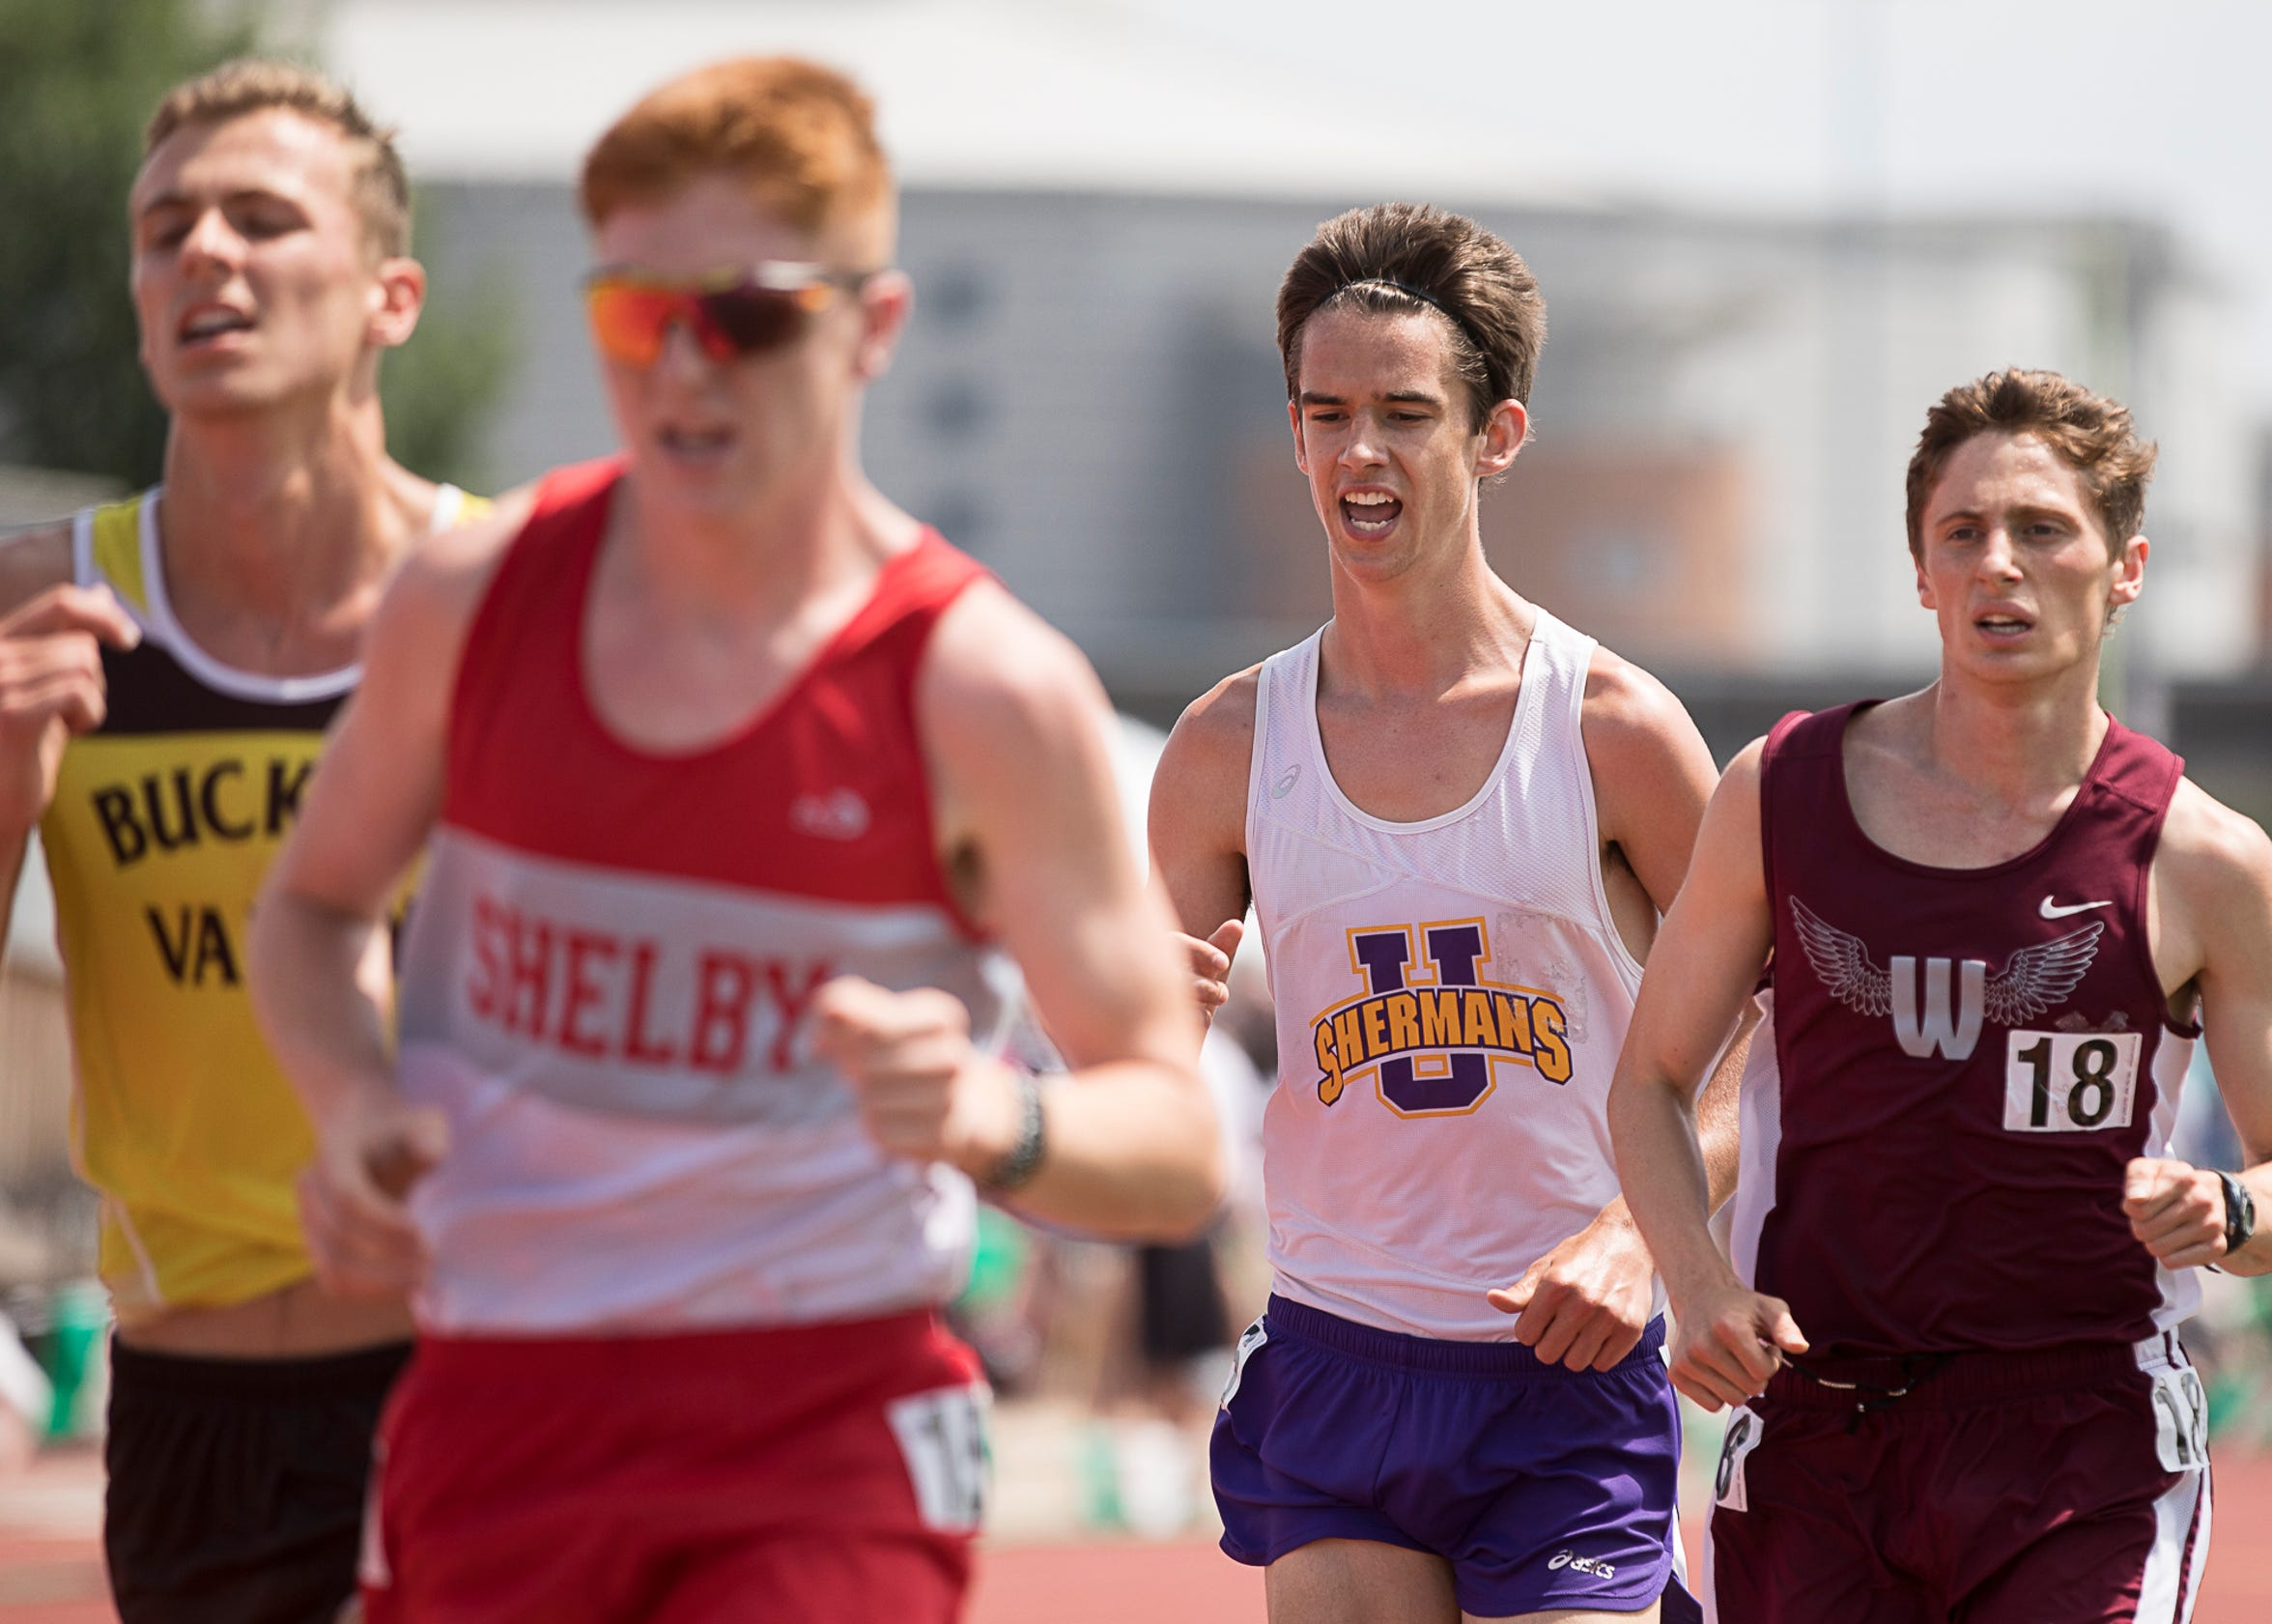 Unioto's Tucker Markko took fifth with a time of 9:37.63 in the 3,200 meter run during the 2018 Division II state finals at Jesse Owens Memorial Stadium in Columbus.